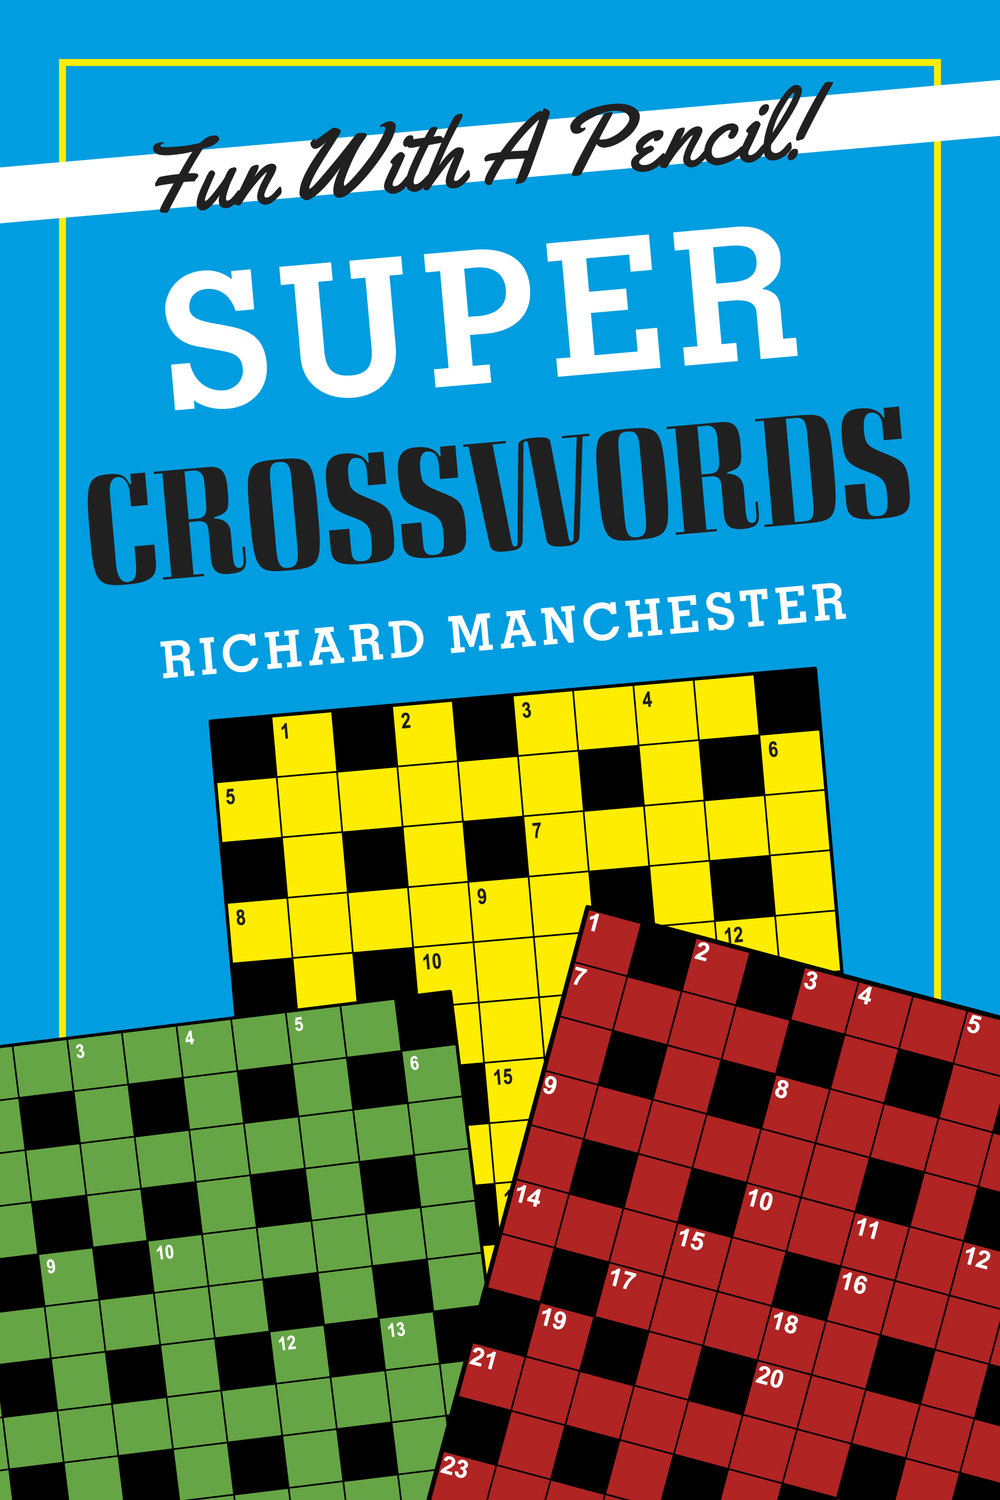 Bristol-FunWithAPencil-SuperCrosswords.jpg